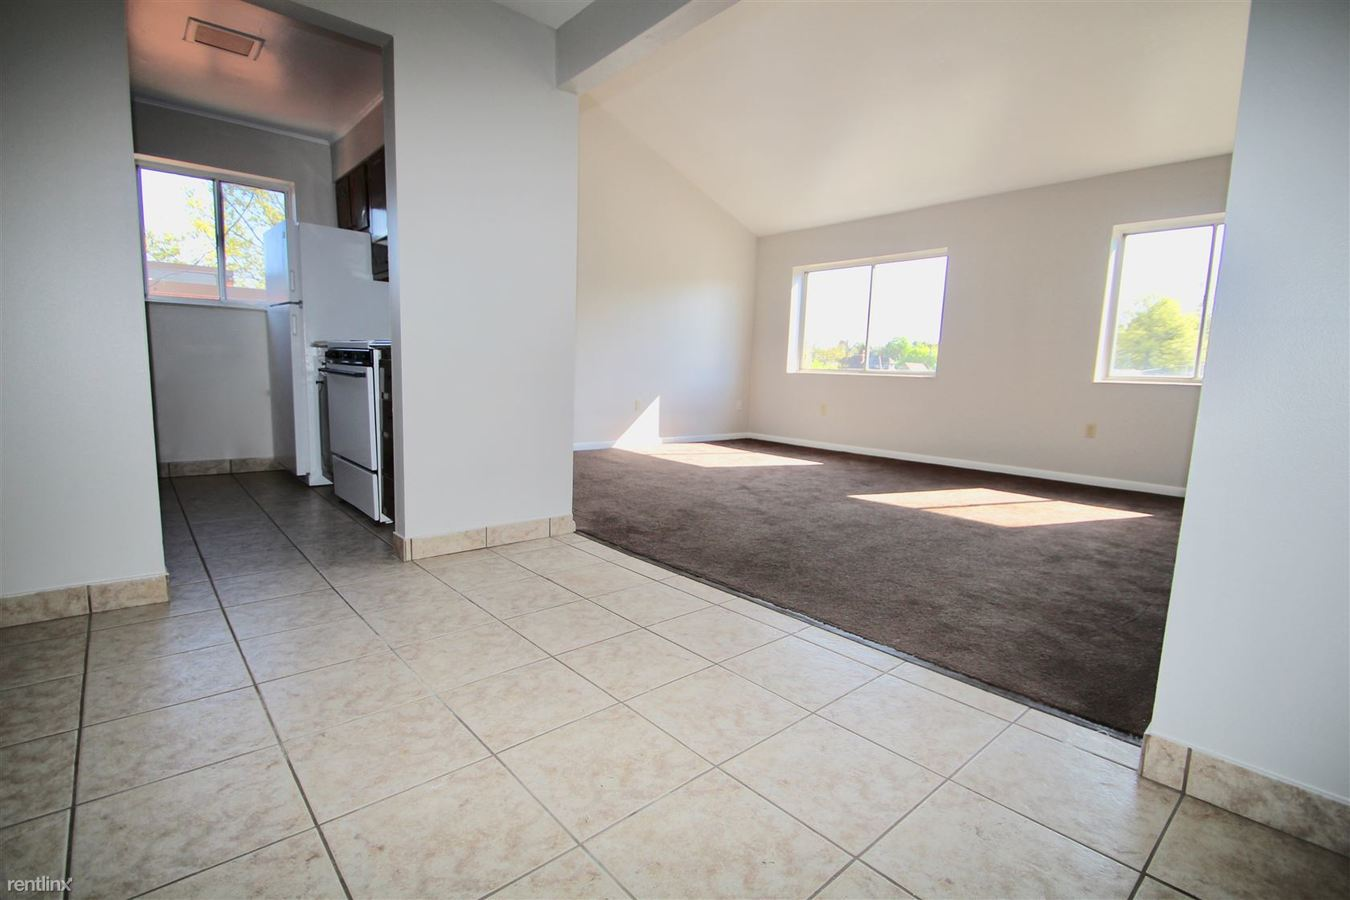 1 Bedroom 1 Bathroom House for rent at Canterbury Court in Washington, PA